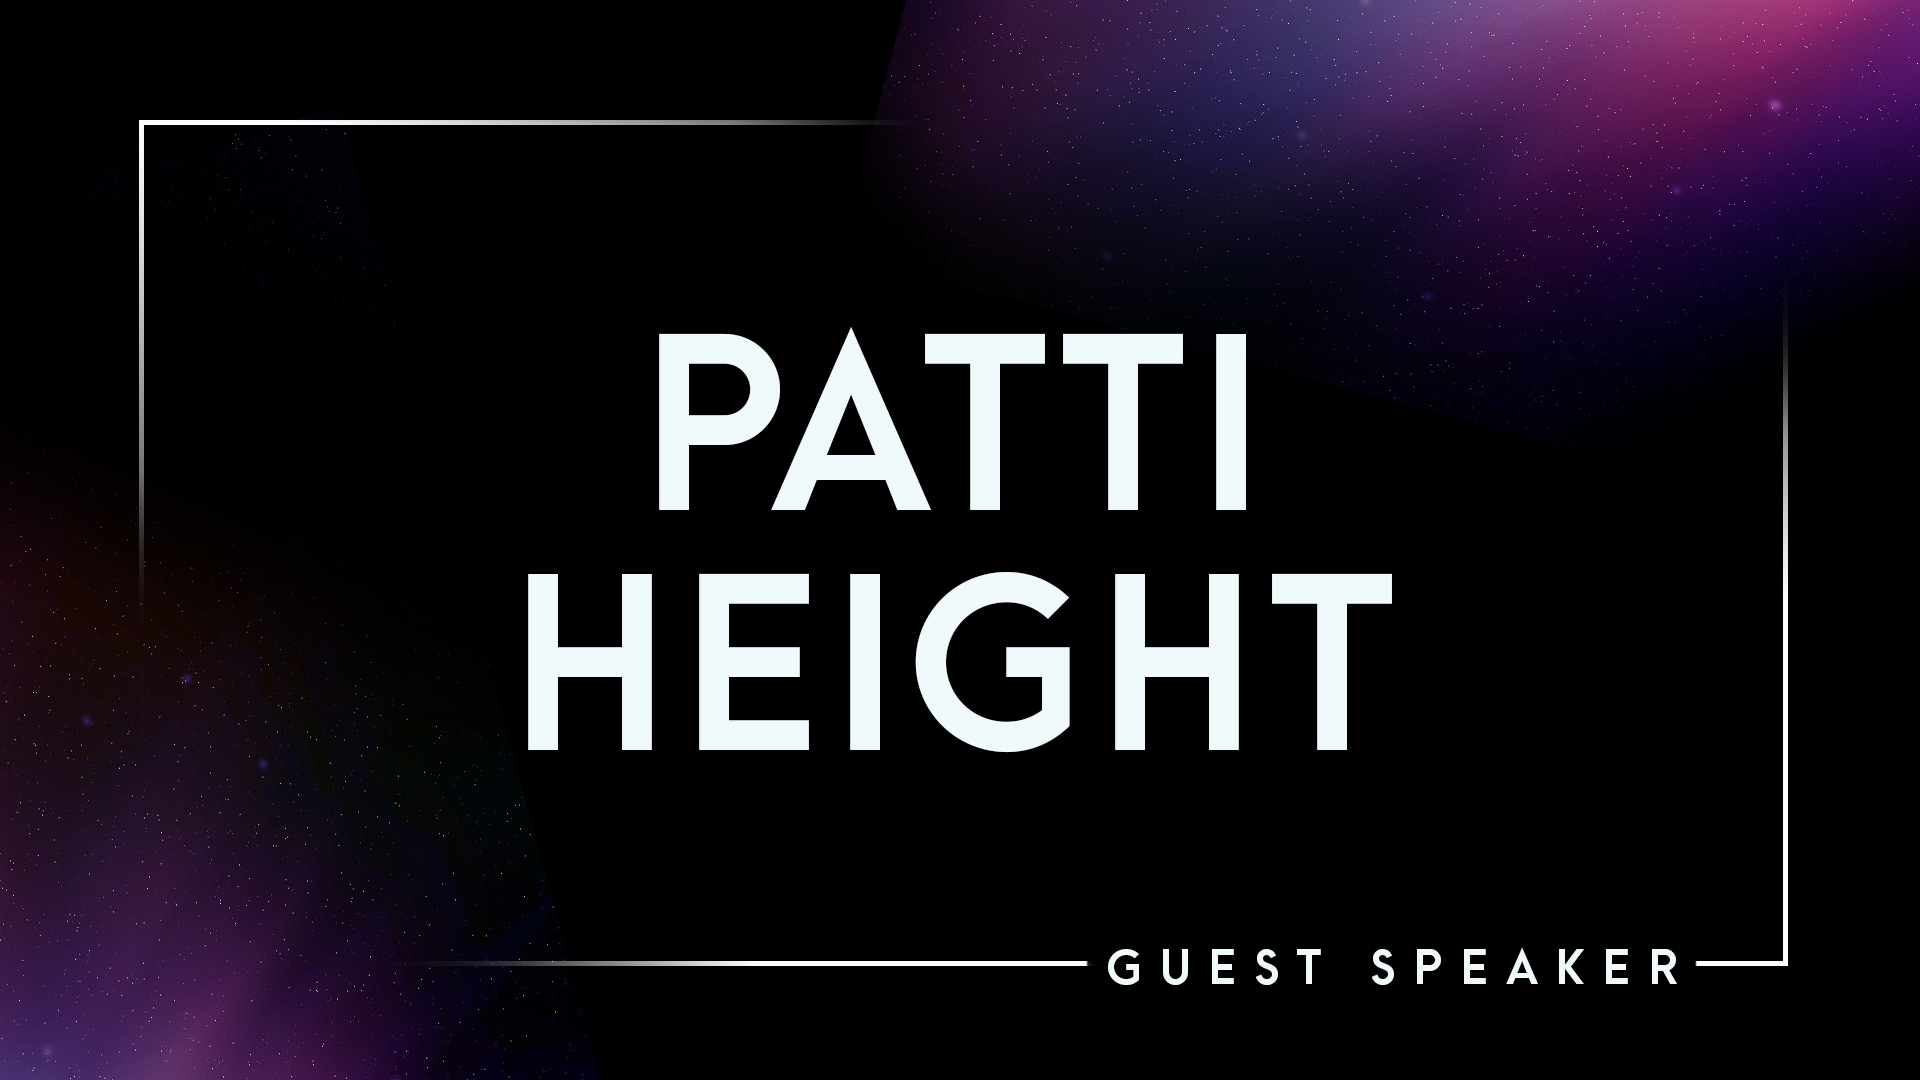 Guest Speaker, Patti Height